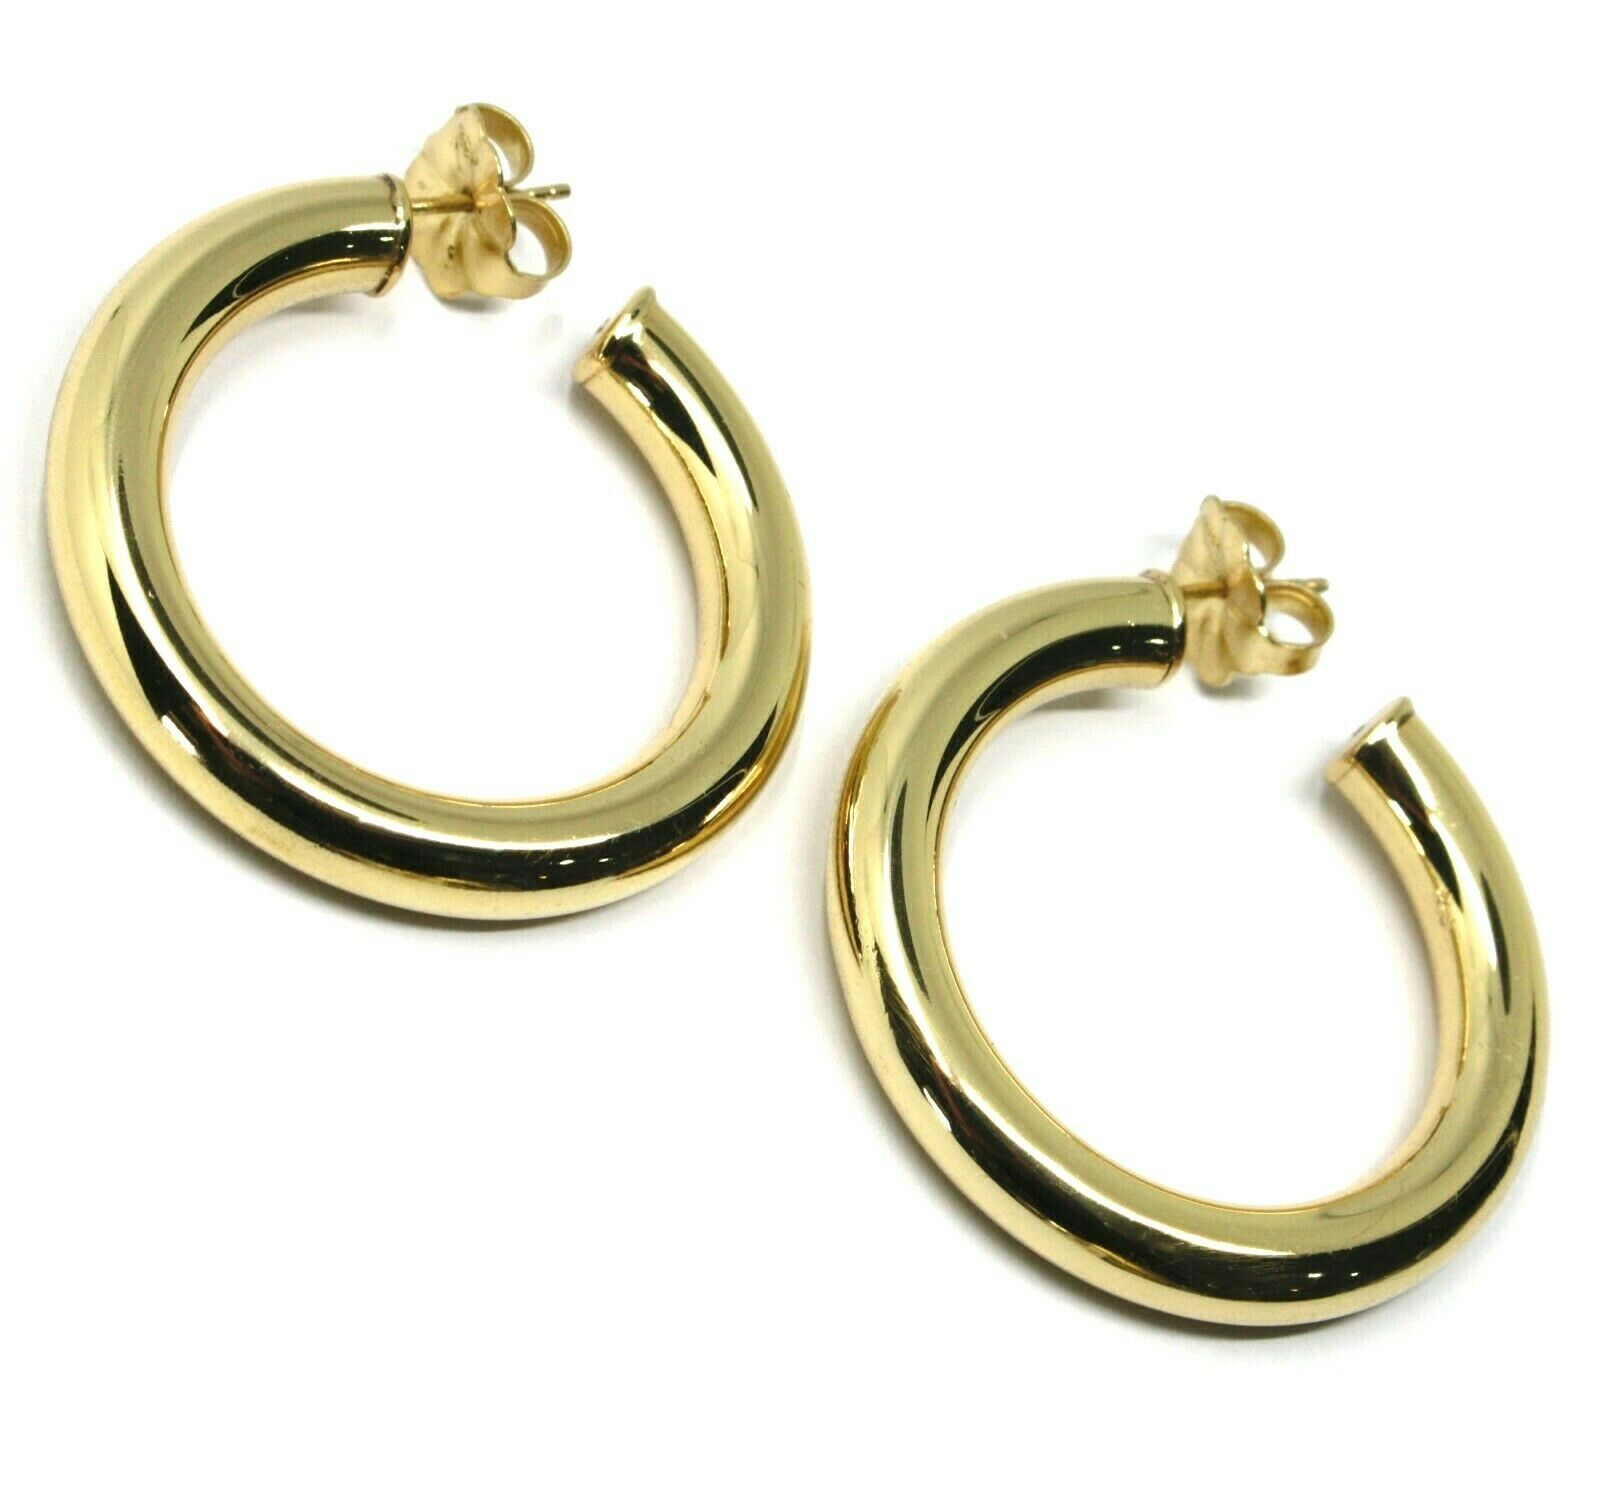 925 STERLING SILVER CIRCLE HOOPS BIG YELLOW EARRINGS, 4 cm x 6 mm SMOOTH